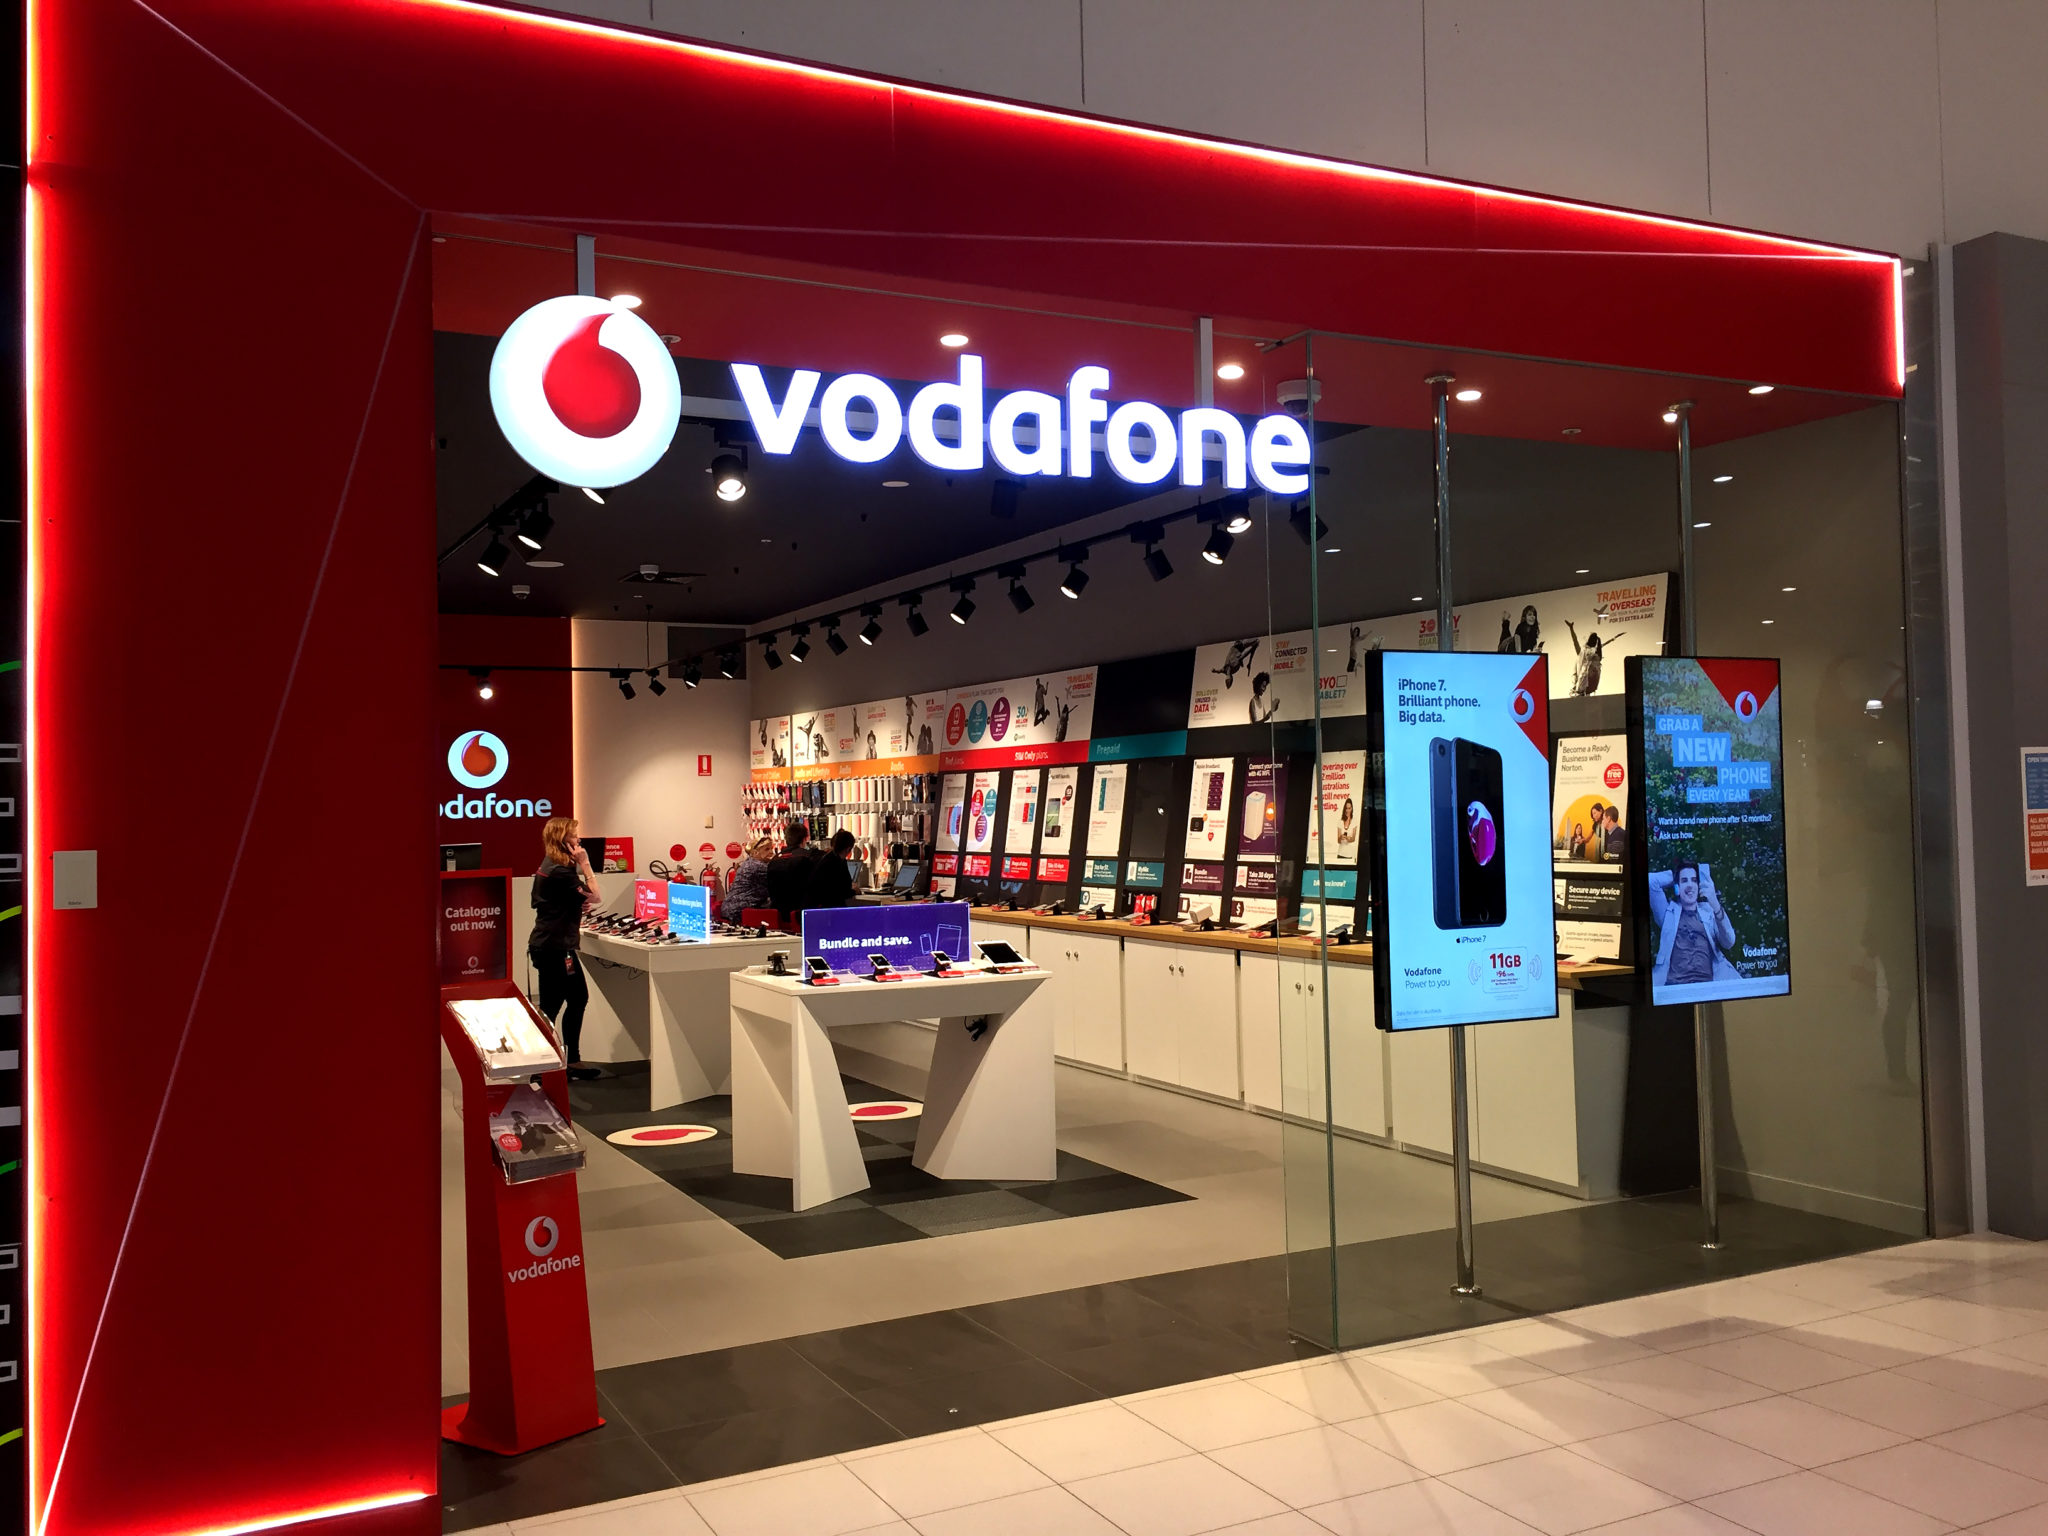 Nokia, Vodafone Idea complete 1st phase of DSR deployment in India